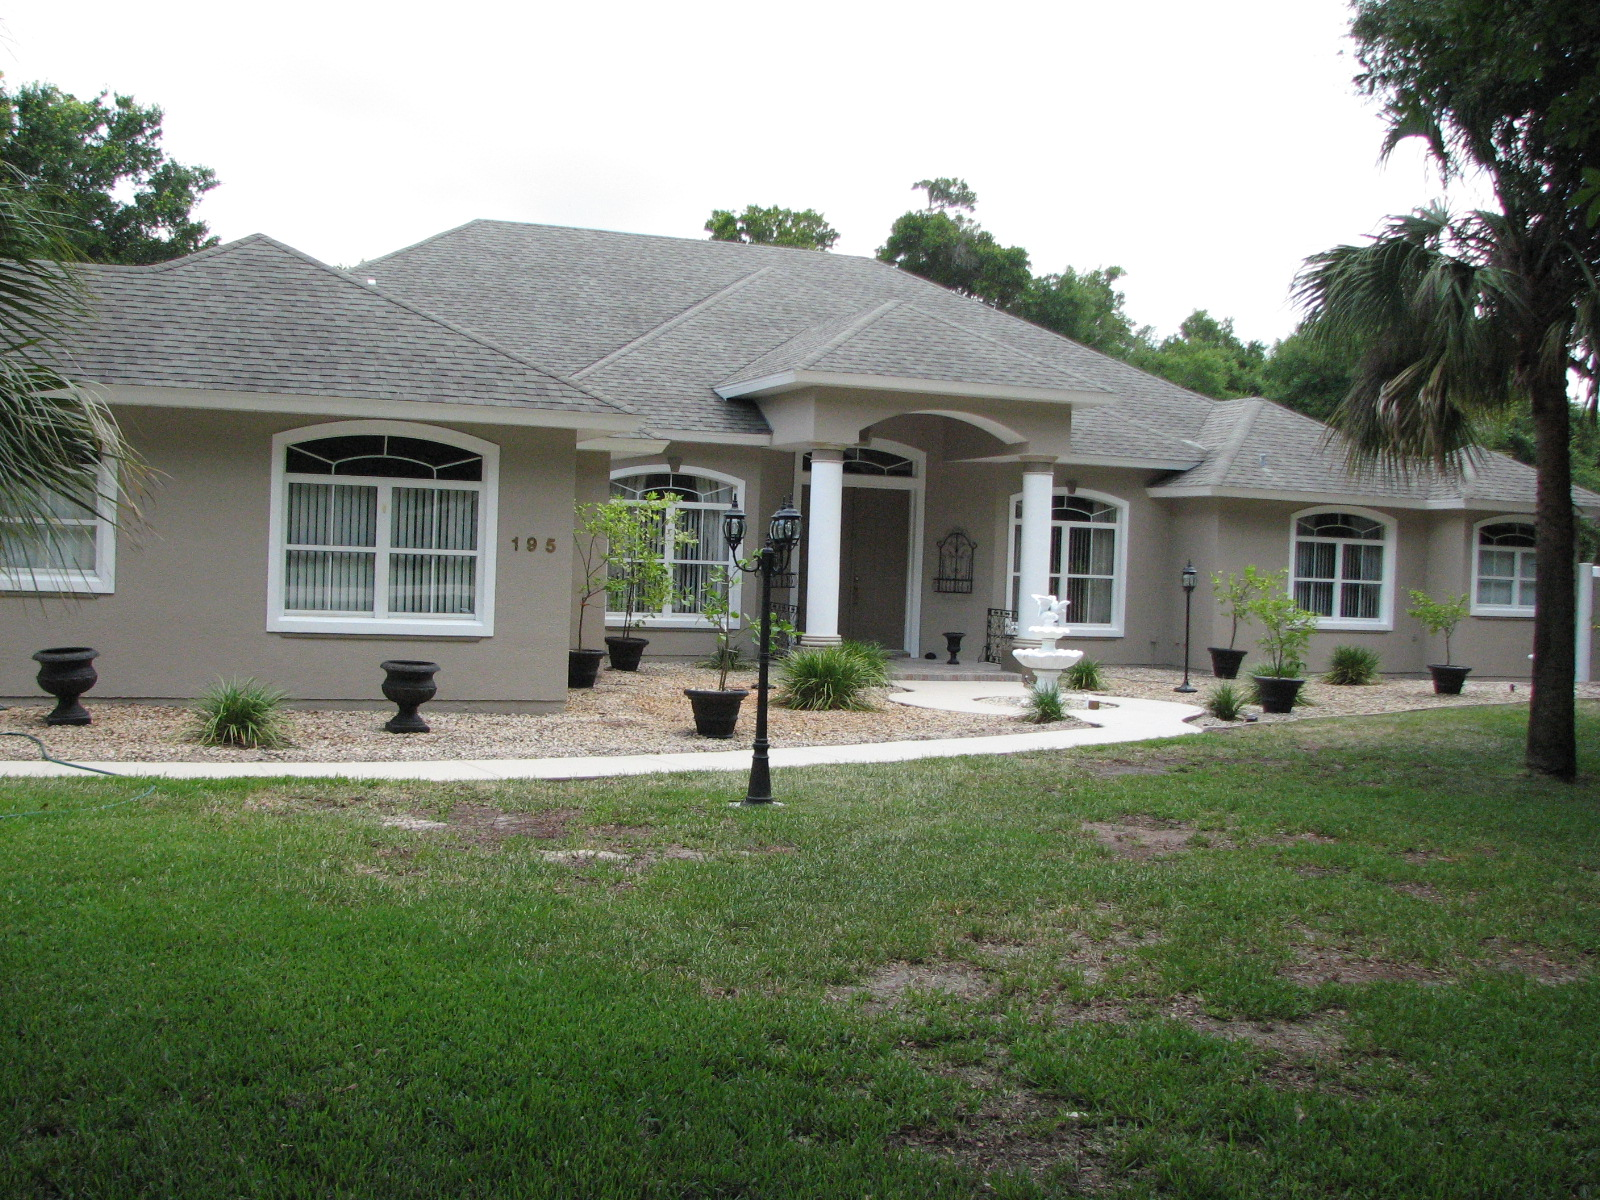 Cocoa fl exterior stucco painting after photo for Stucco colors for houses exterior